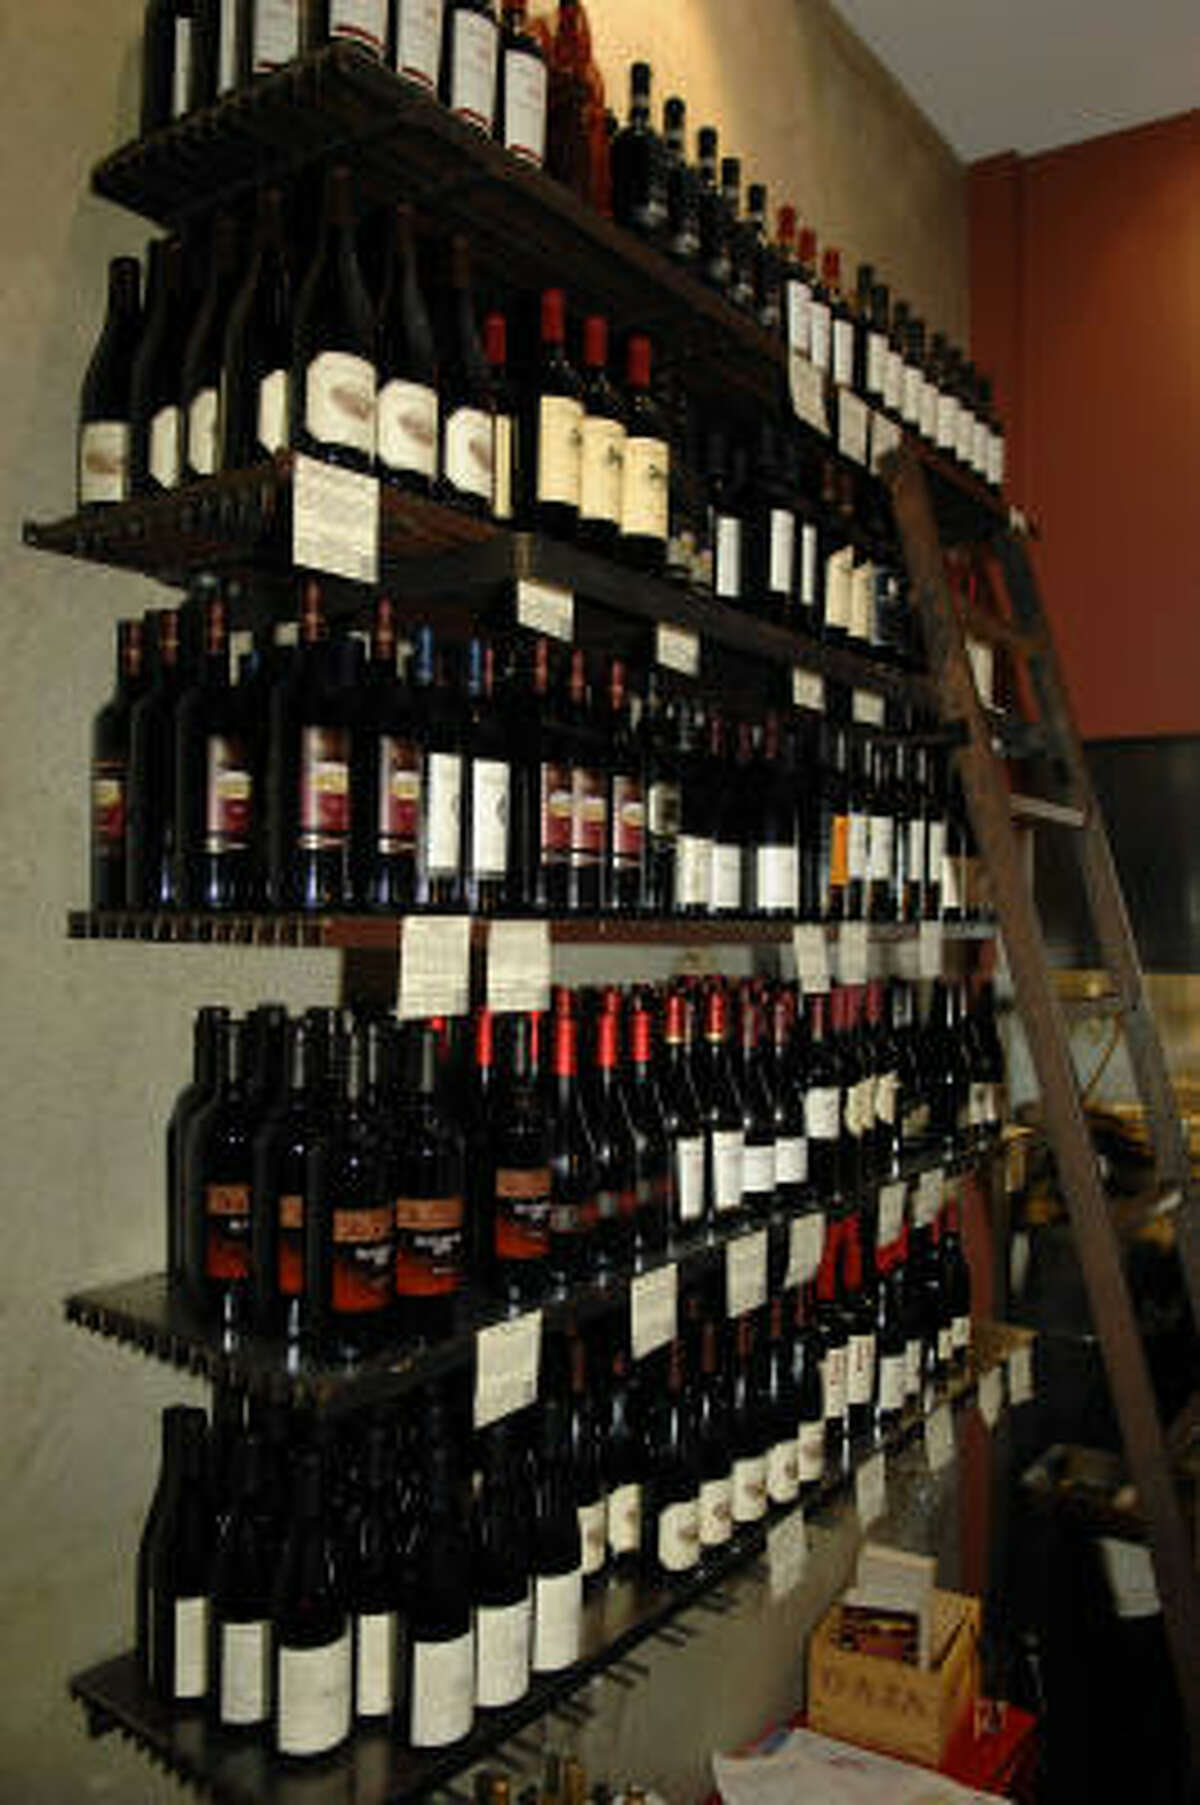 Along with their excellent wine selection at decent bottle prices ...